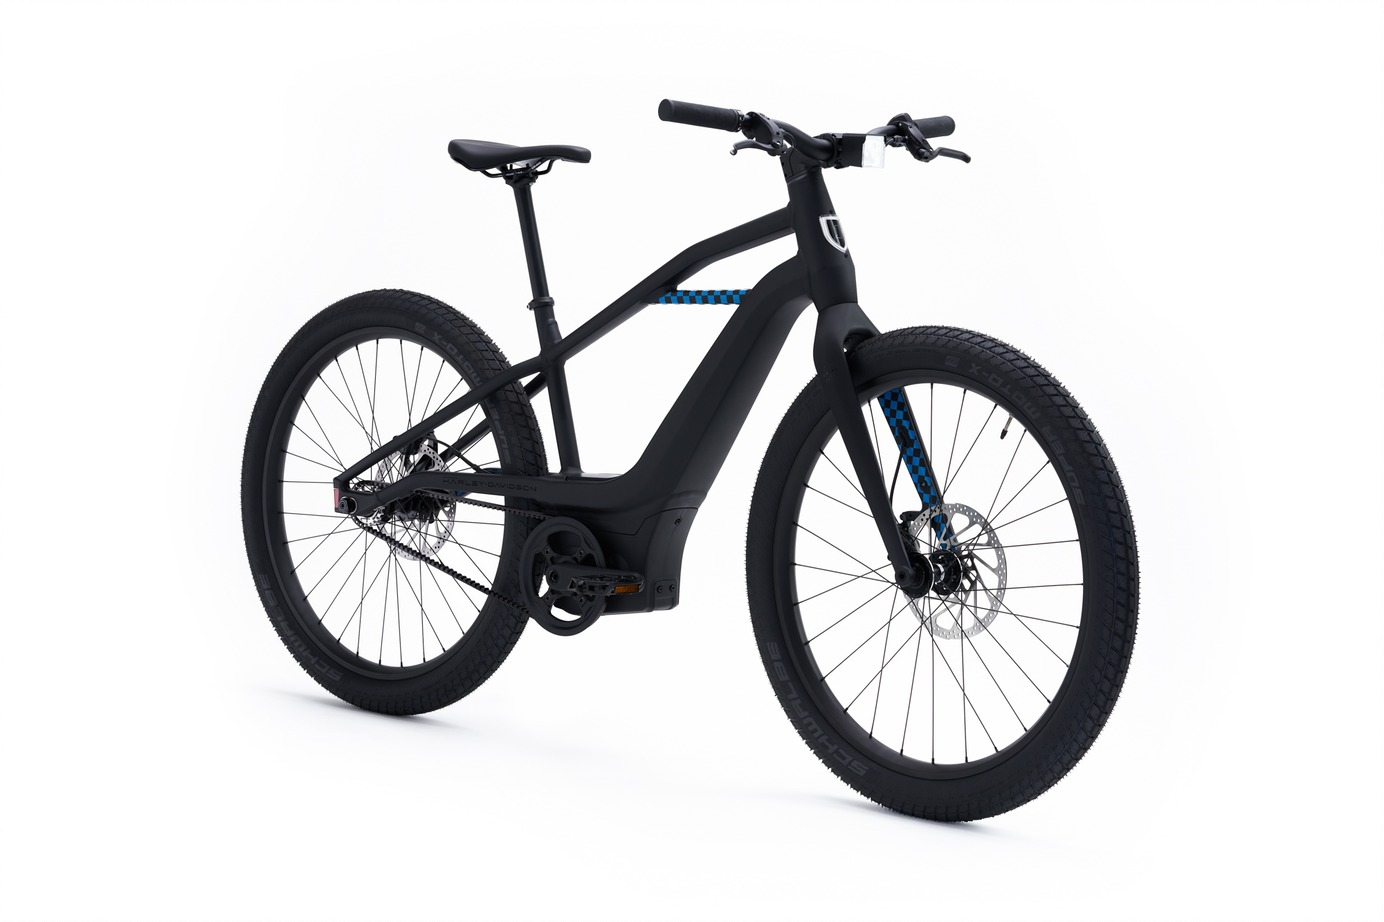 Harley-Davidson Serial 1 eBicycle - Mosh/Cty